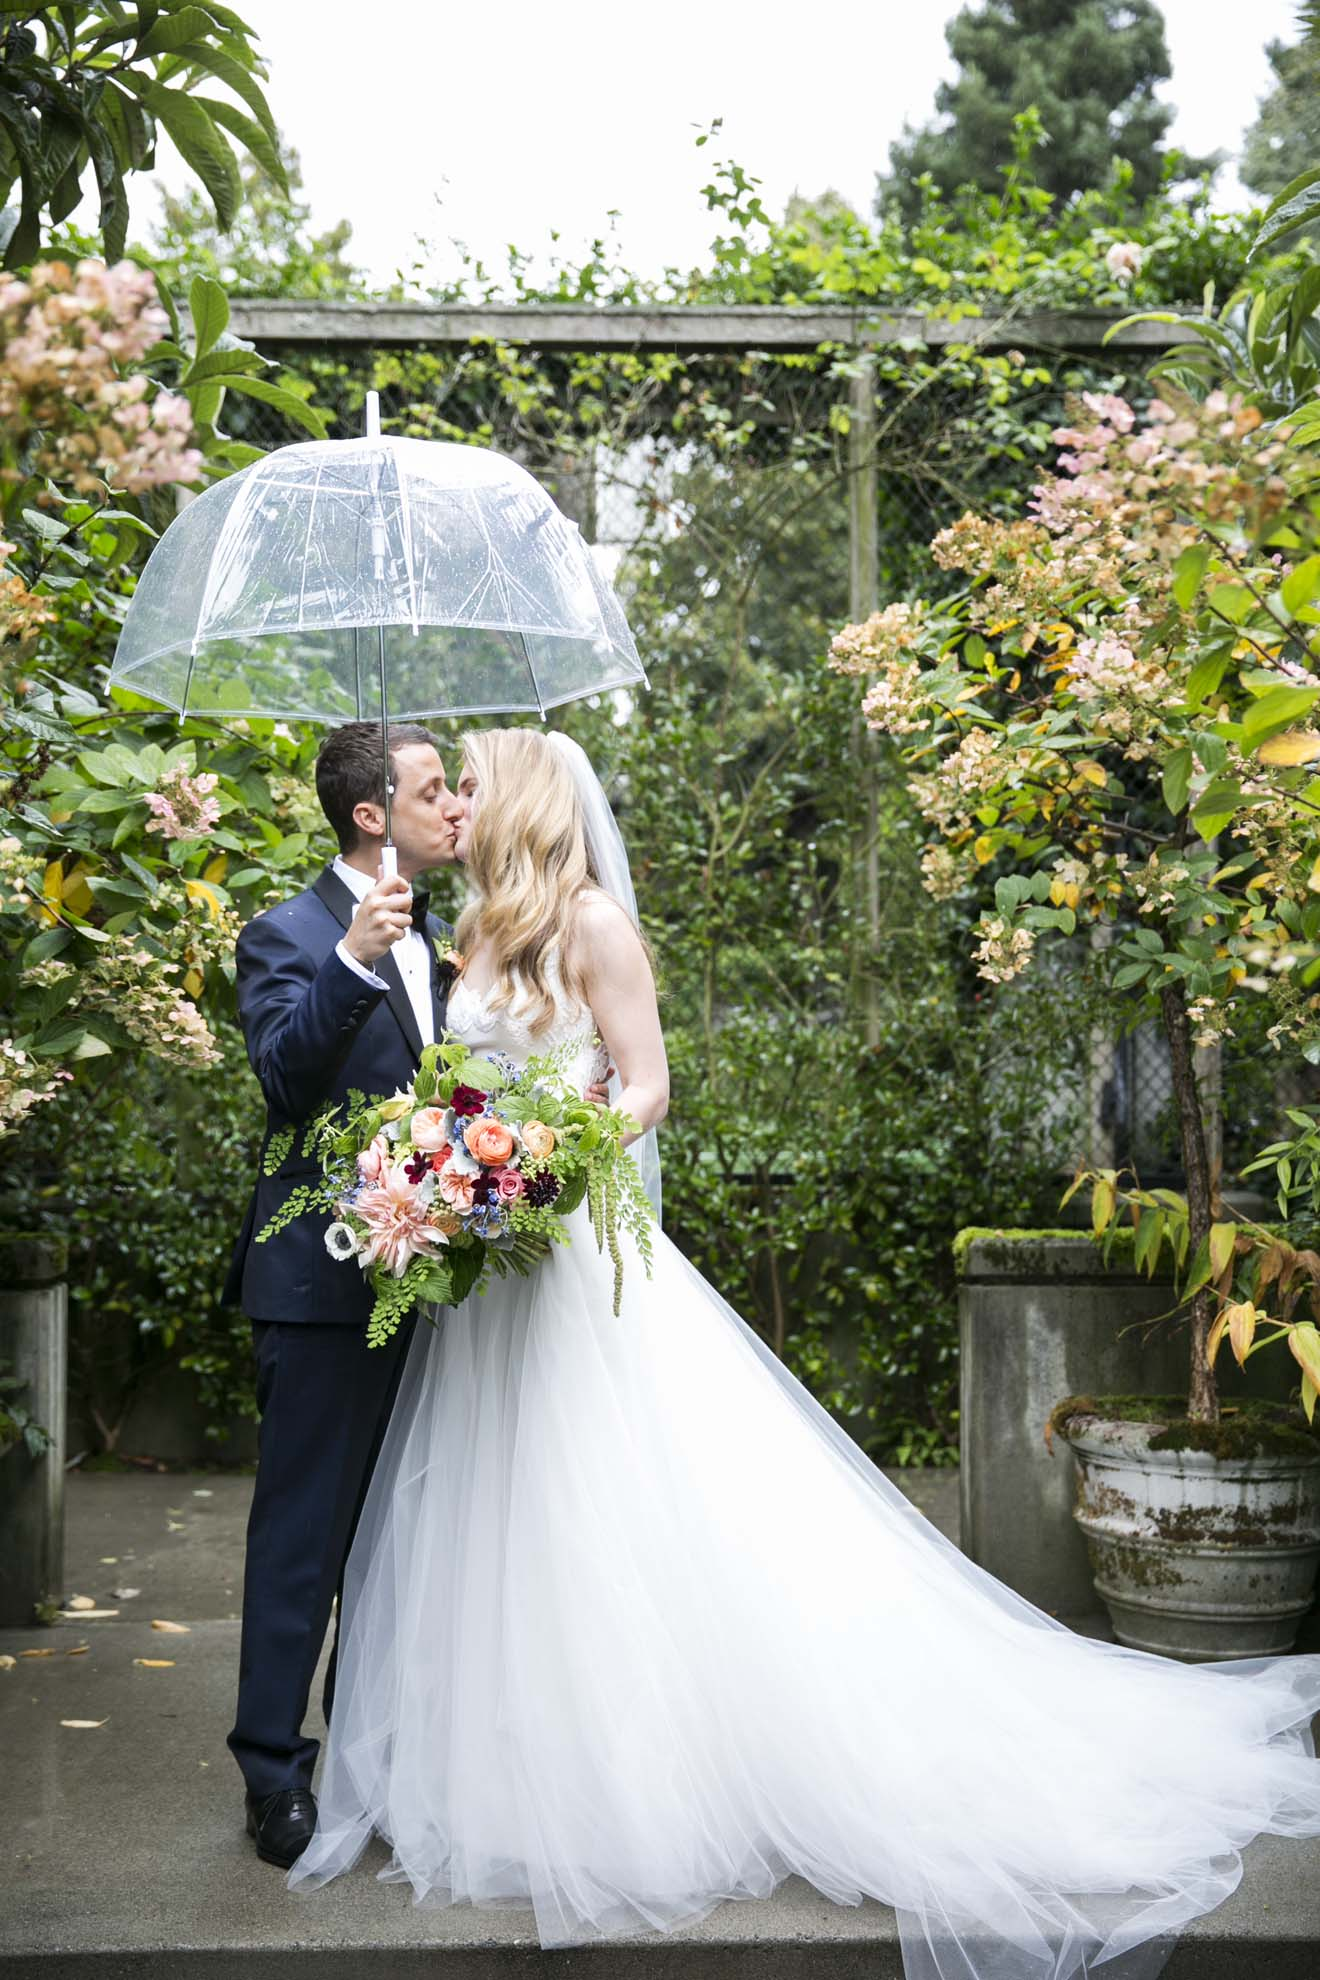 Bride and groom in Seattle rain holding a clear umbrella standing in garden